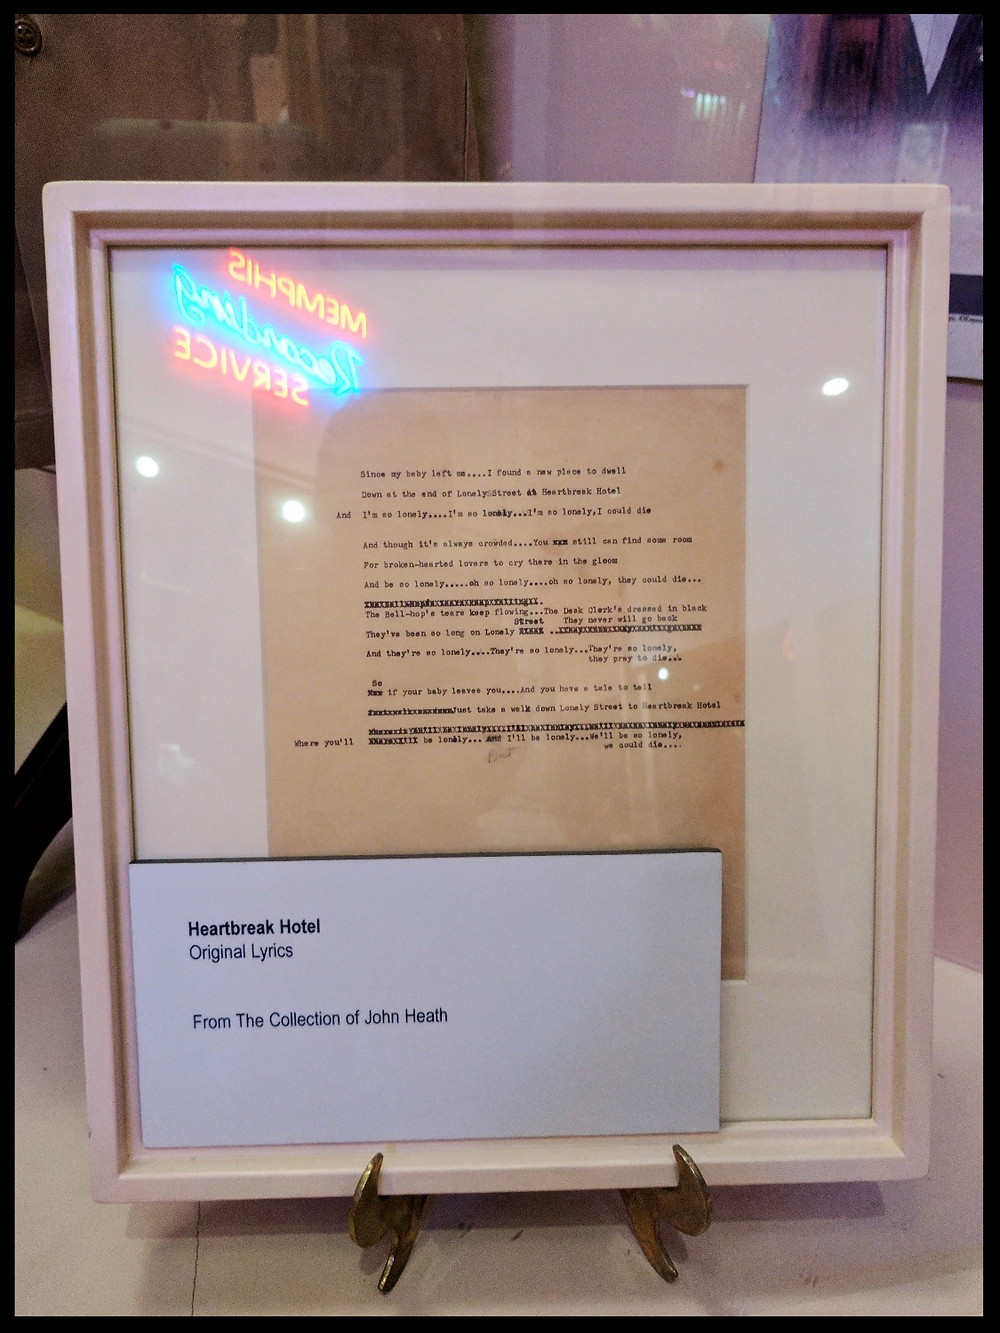 Heartbreak Hotel lyrics at the Memphis Rock 'n' Soul Museum